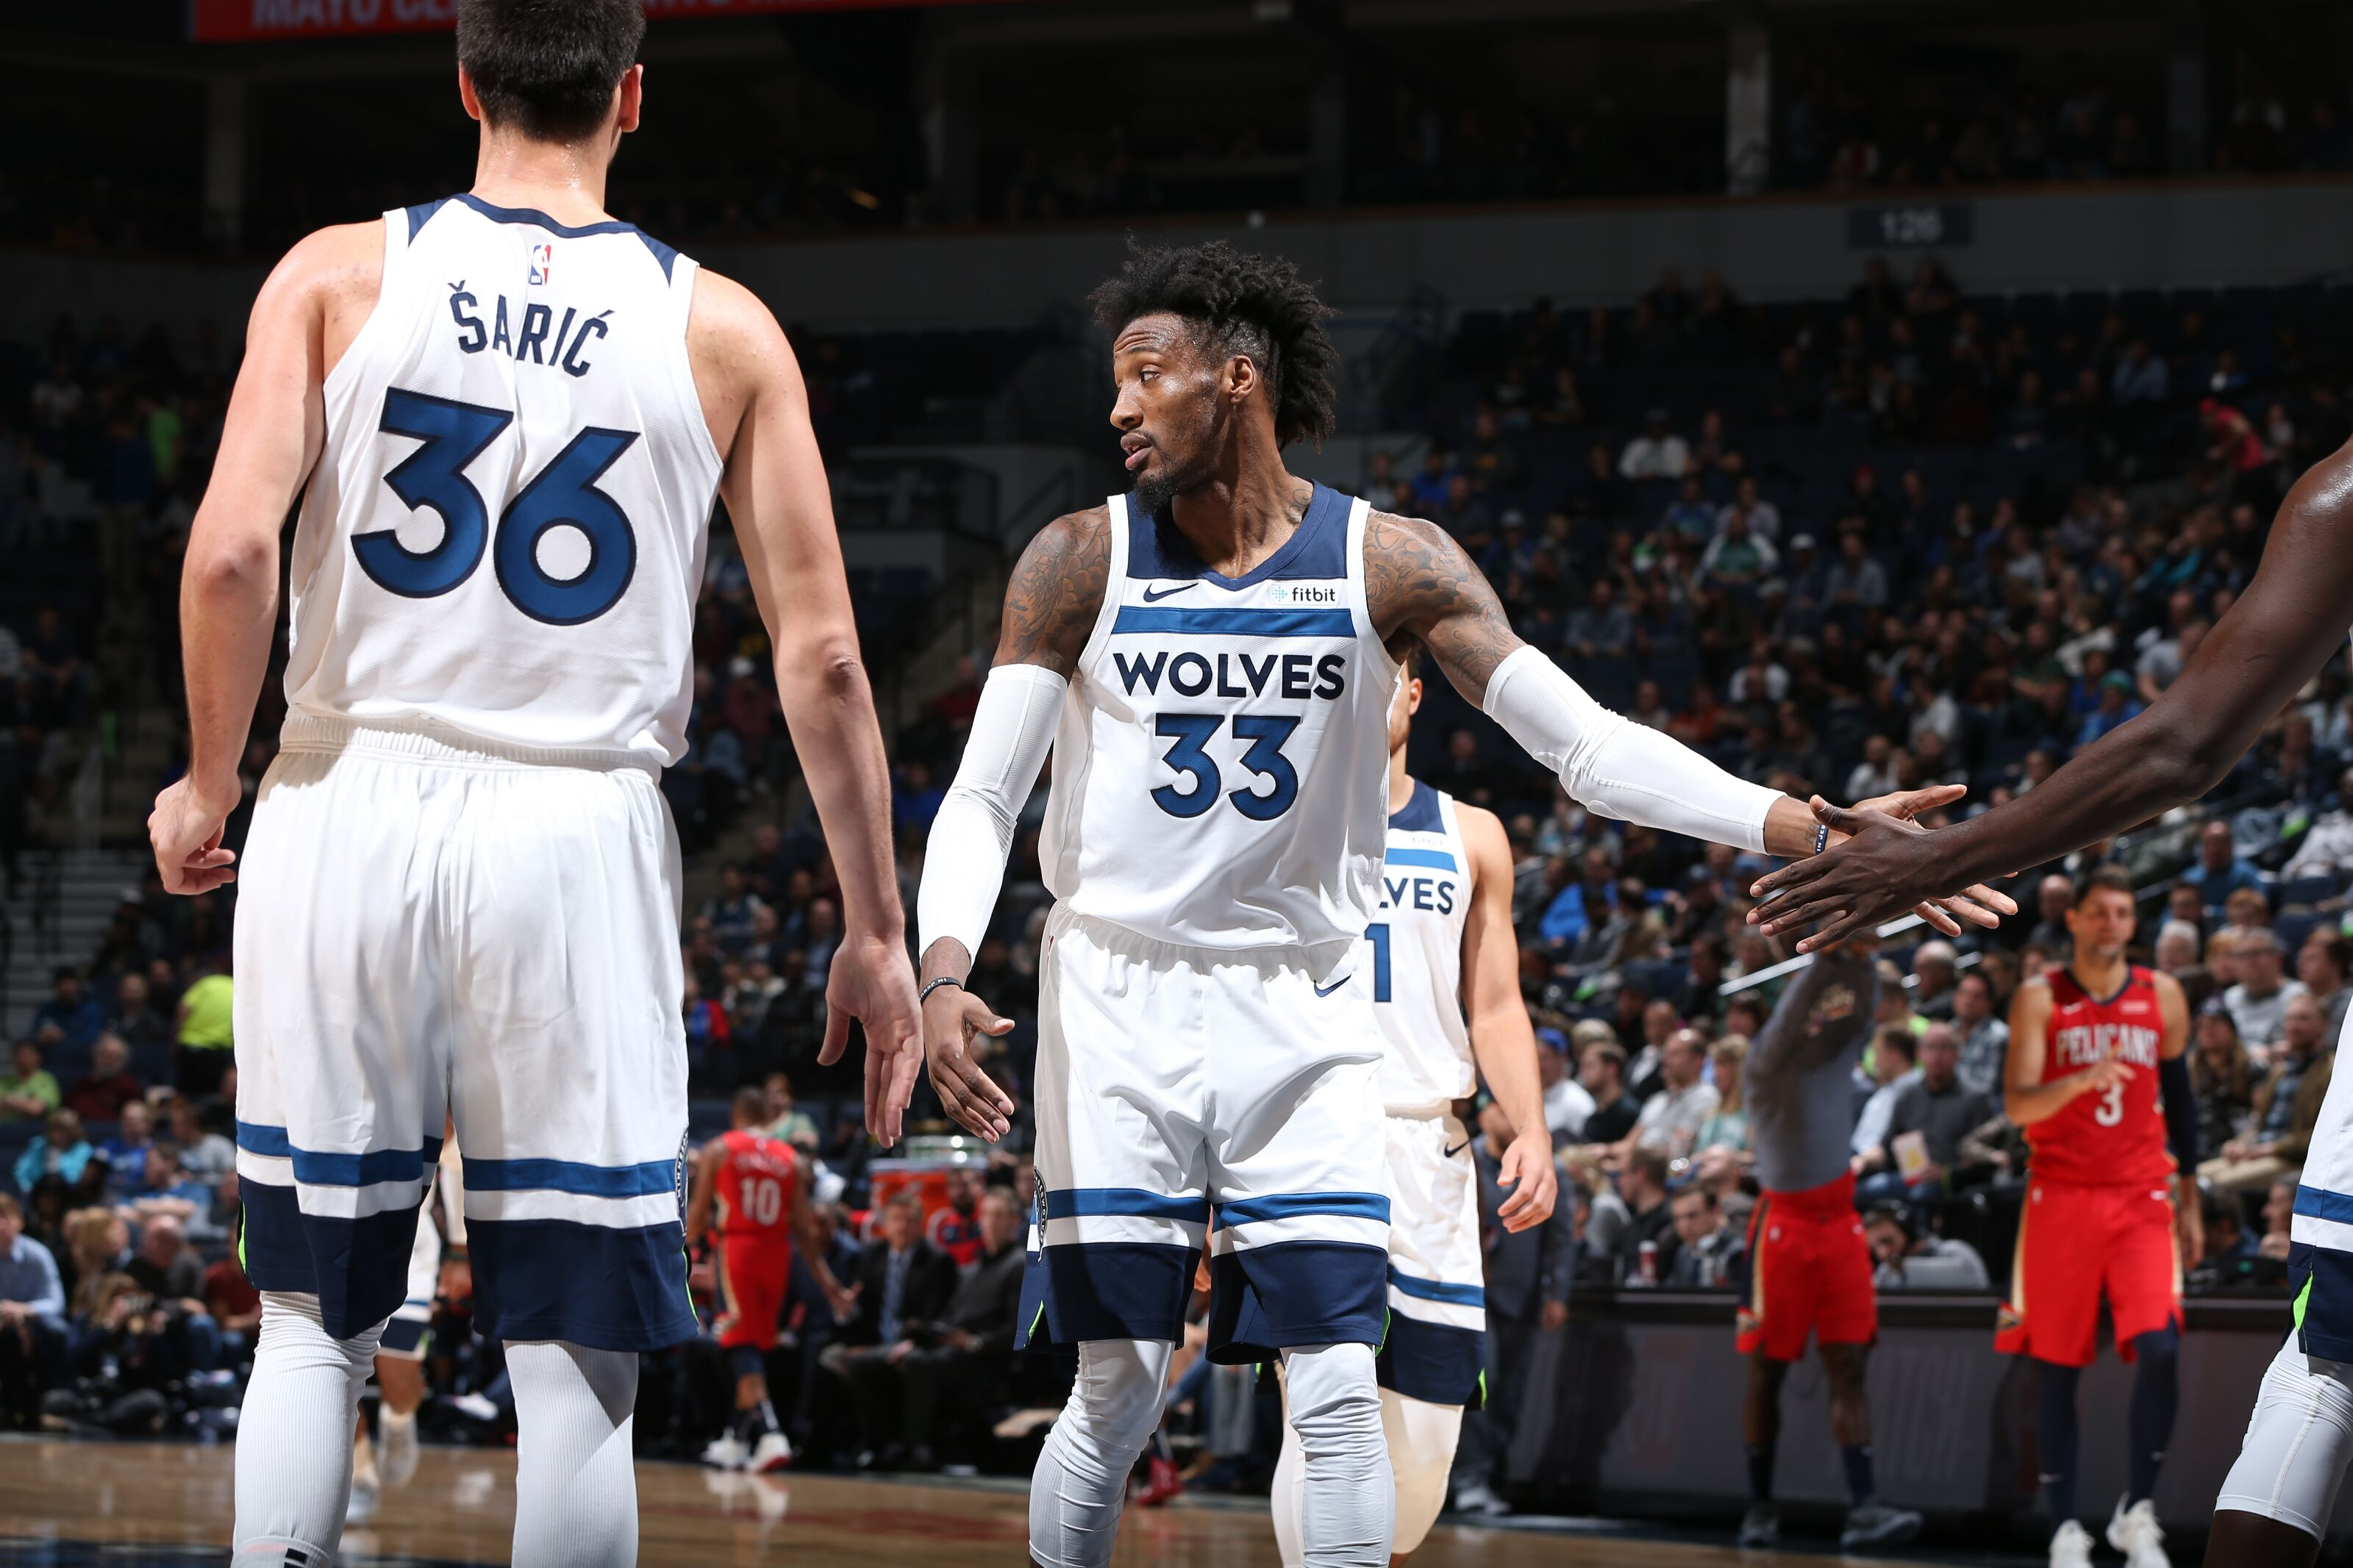 Minnesota Timberwolves: A win over the Pelicans in debut for new Wolves